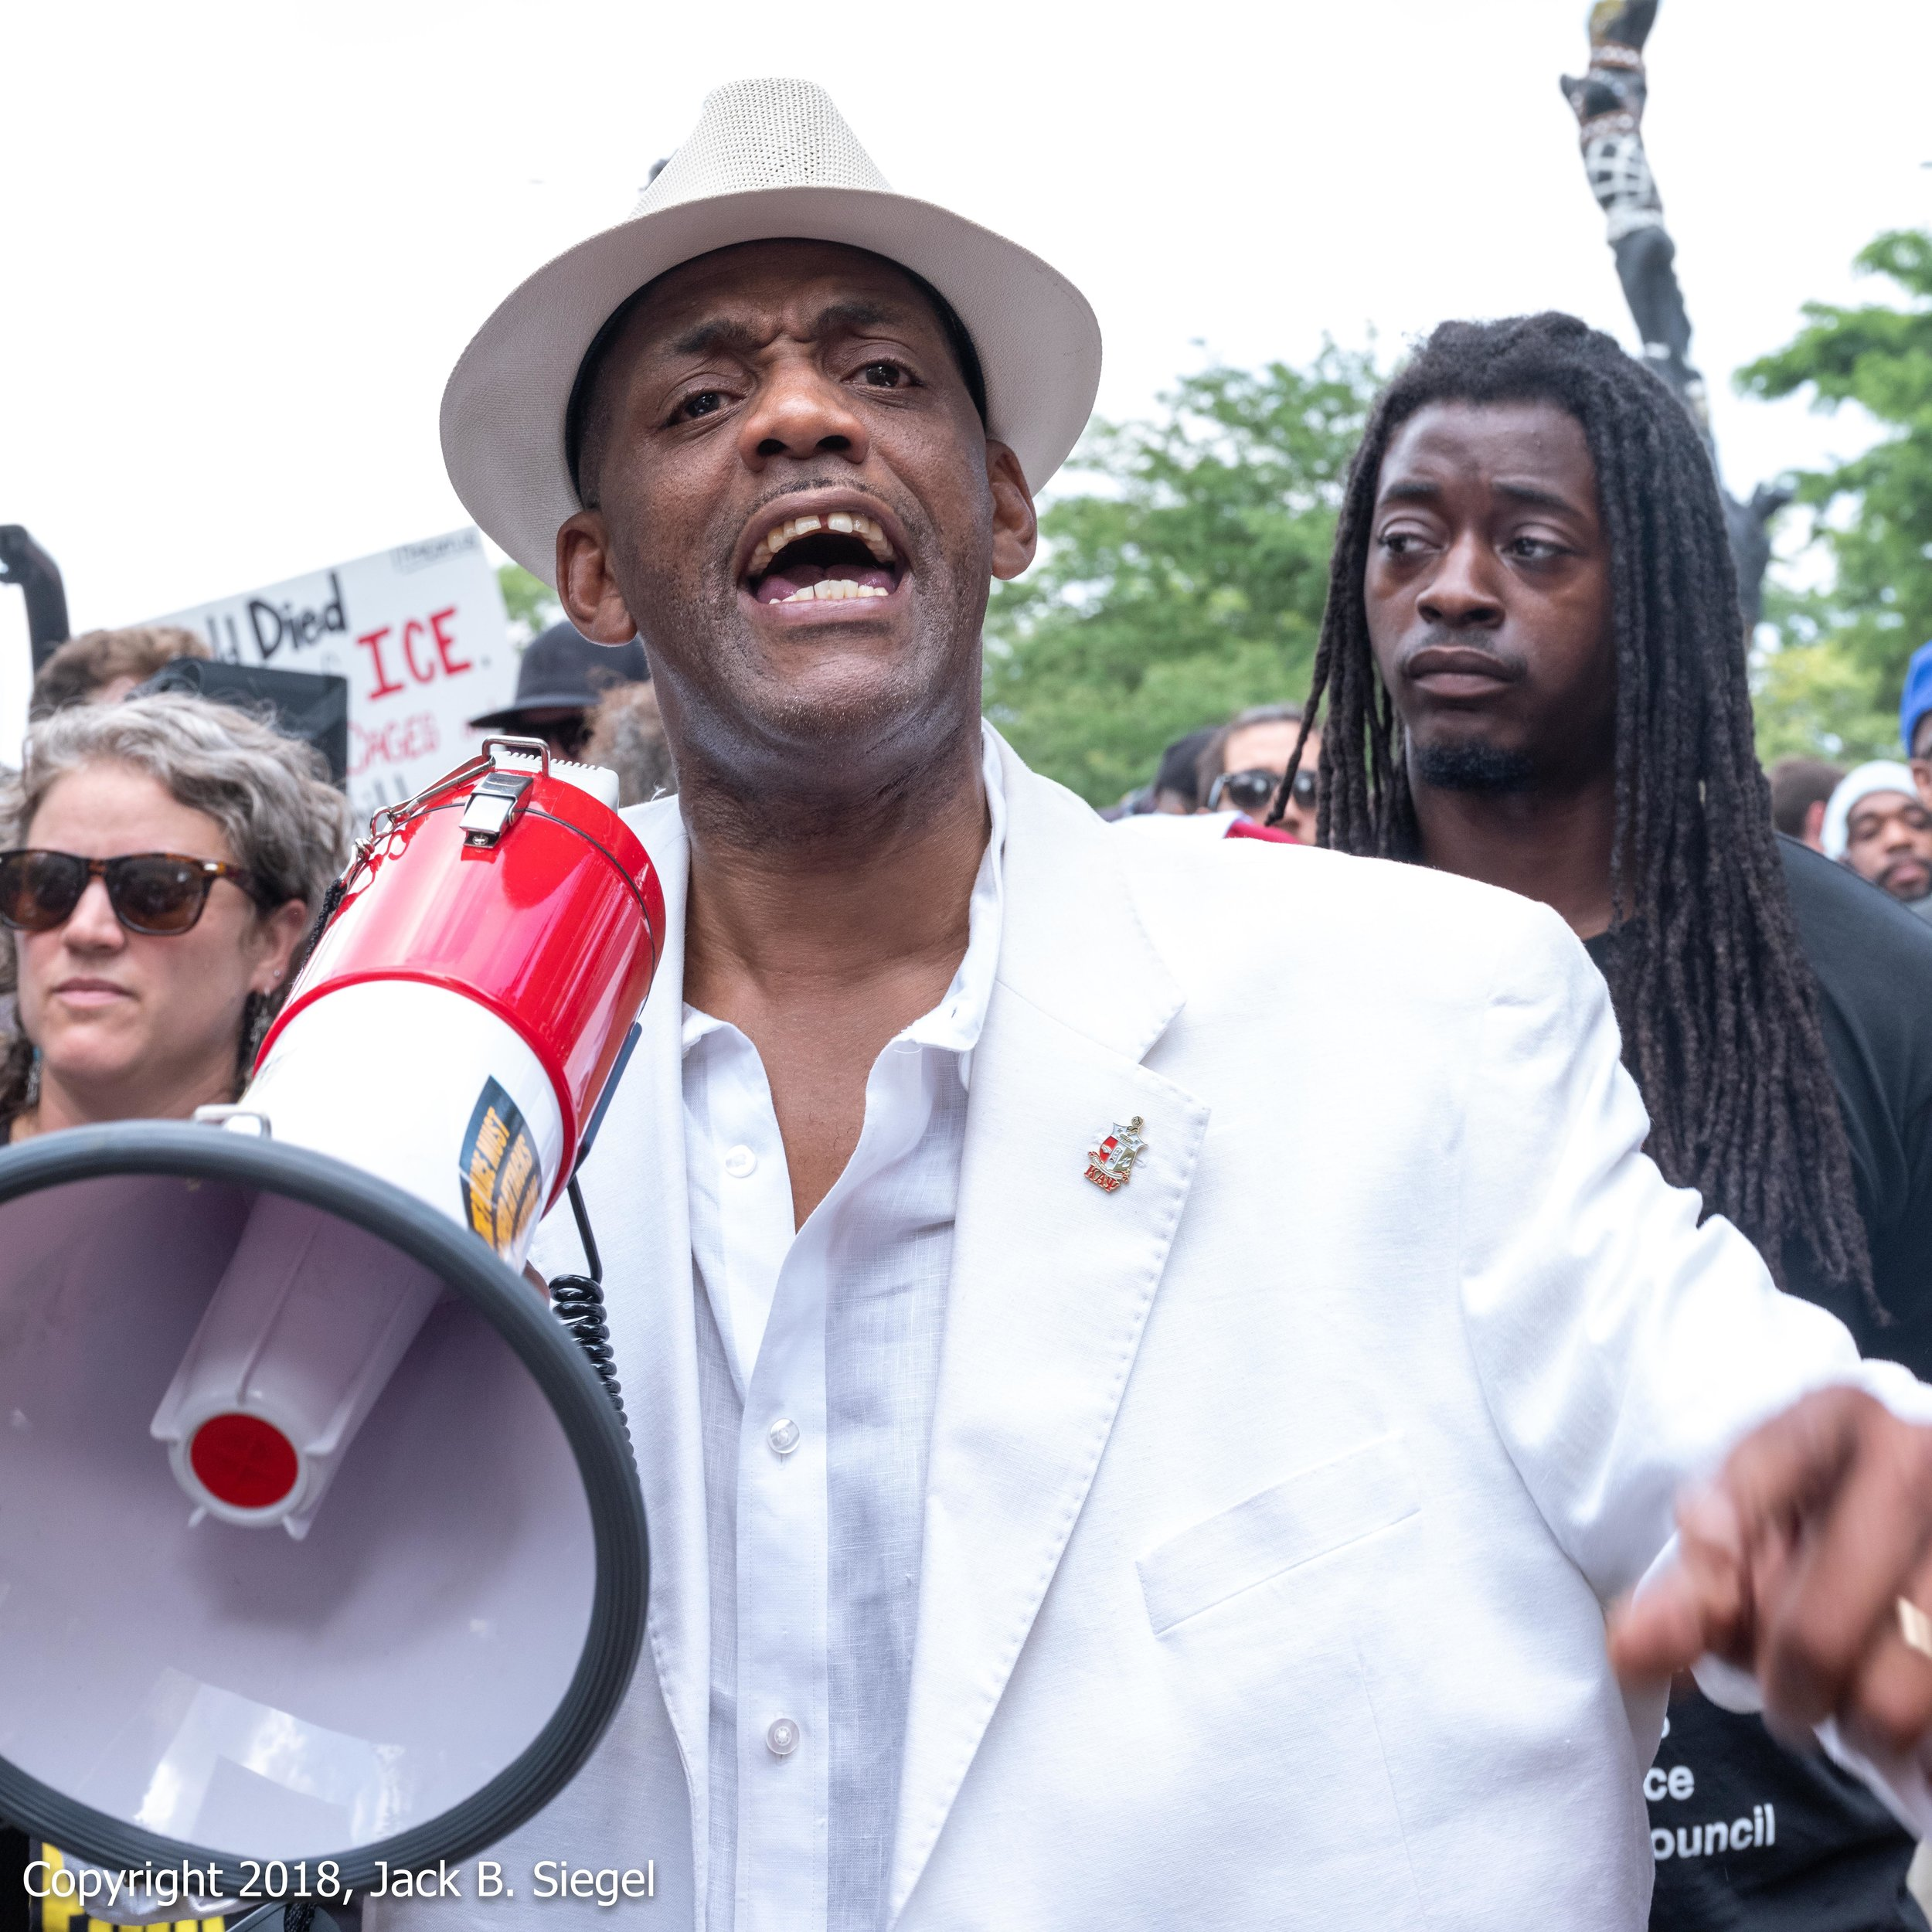 _DSF3448PS__Copyright 2018 jpeg_The Man in White with White Bullhorn.jpg